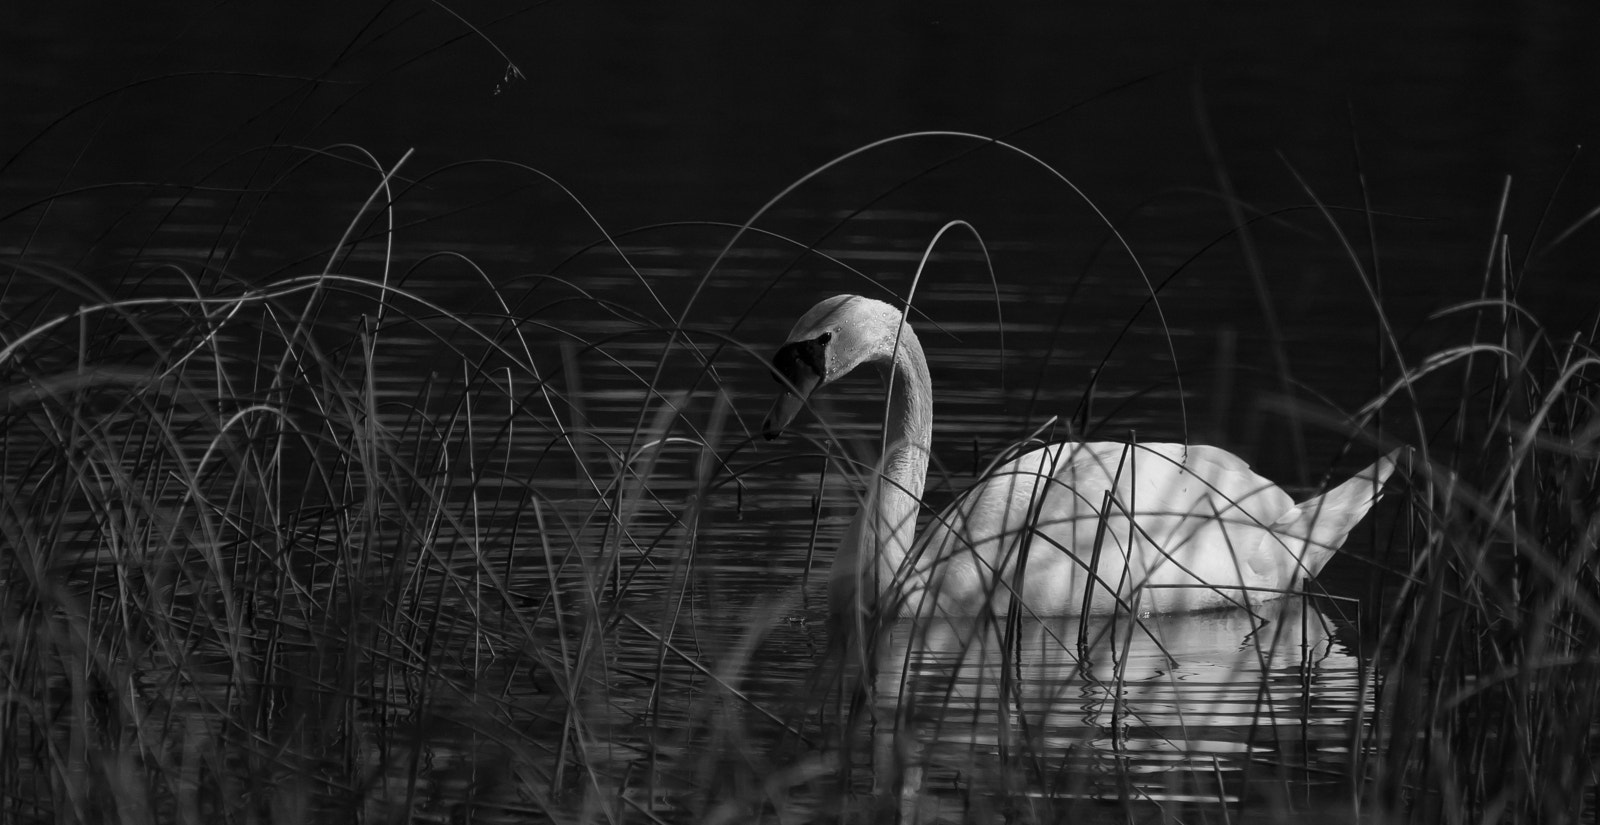 Photograph Waiting in the reeds... by SirJaymes on 500px